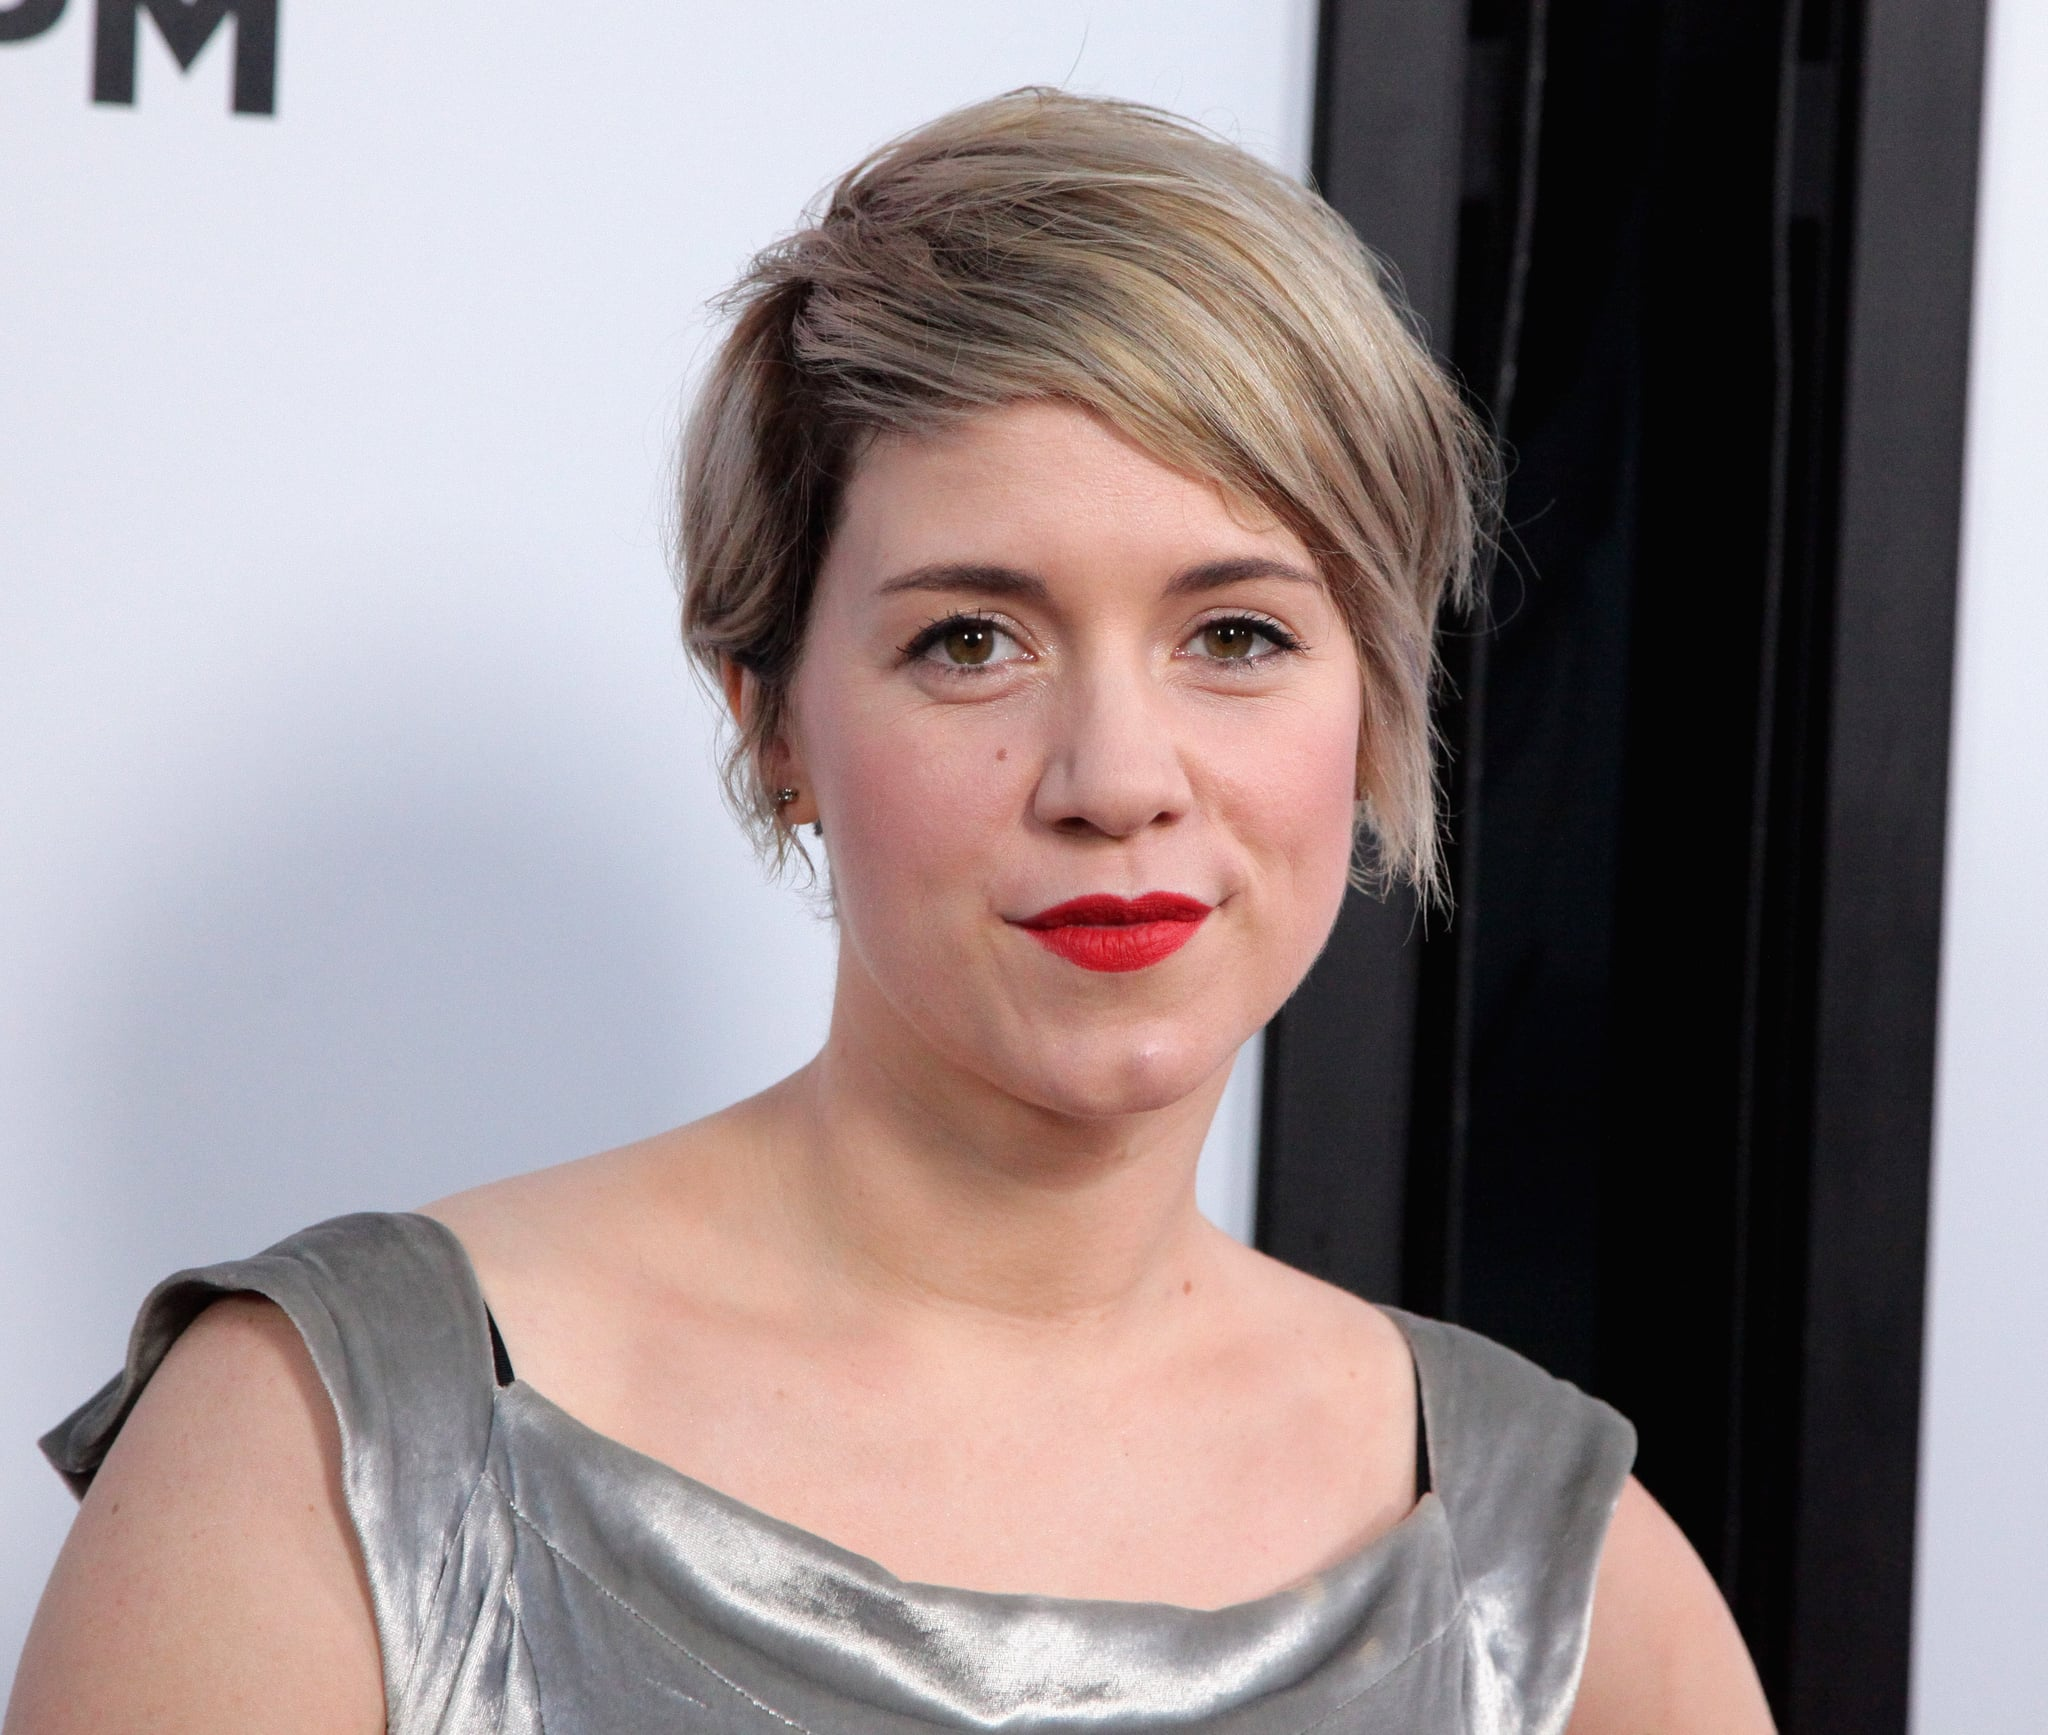 How tall is Alice Wetterlund?